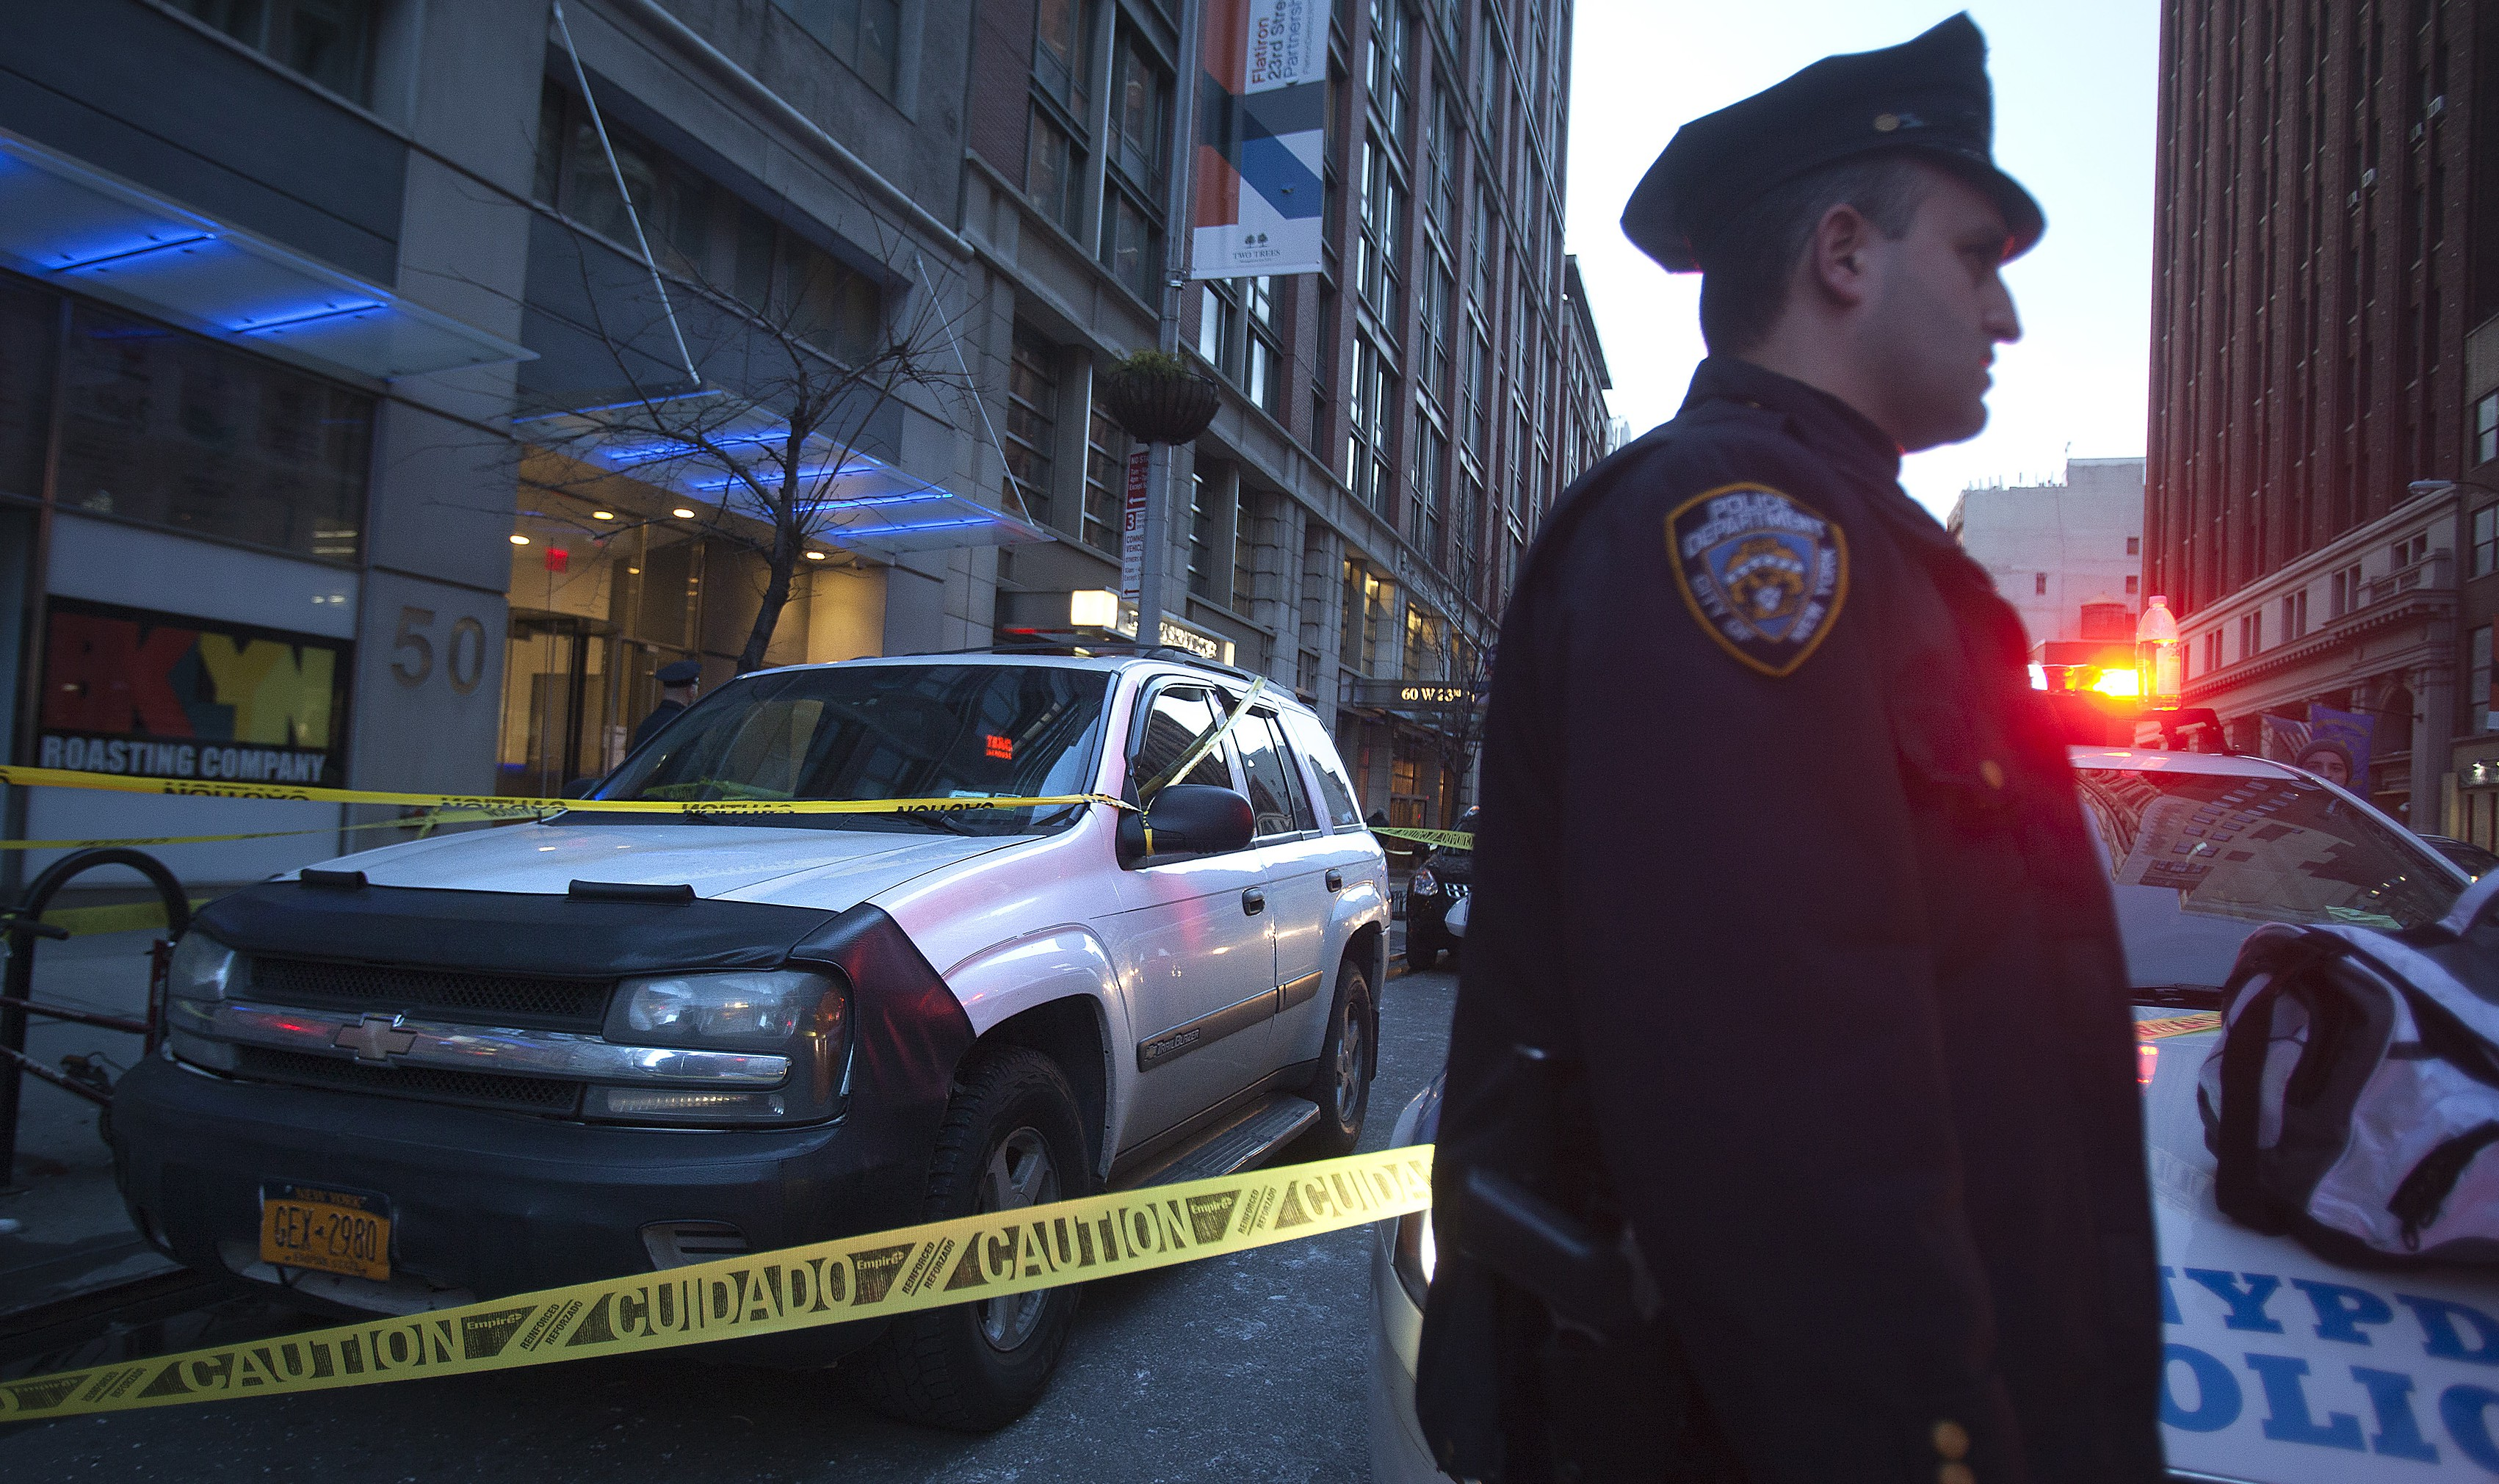 Police stand guard near a car, believed to belong to the suspect, outside a Home Depot store following a shooting in Manhattan's Chelsea neighborhood of New York, January 25, 2015. Two people were killed after a shooting in the store on Sunday afternoon in what appears to be a murder-suicide, two New York Police Department (NYPD) spokesmen said.